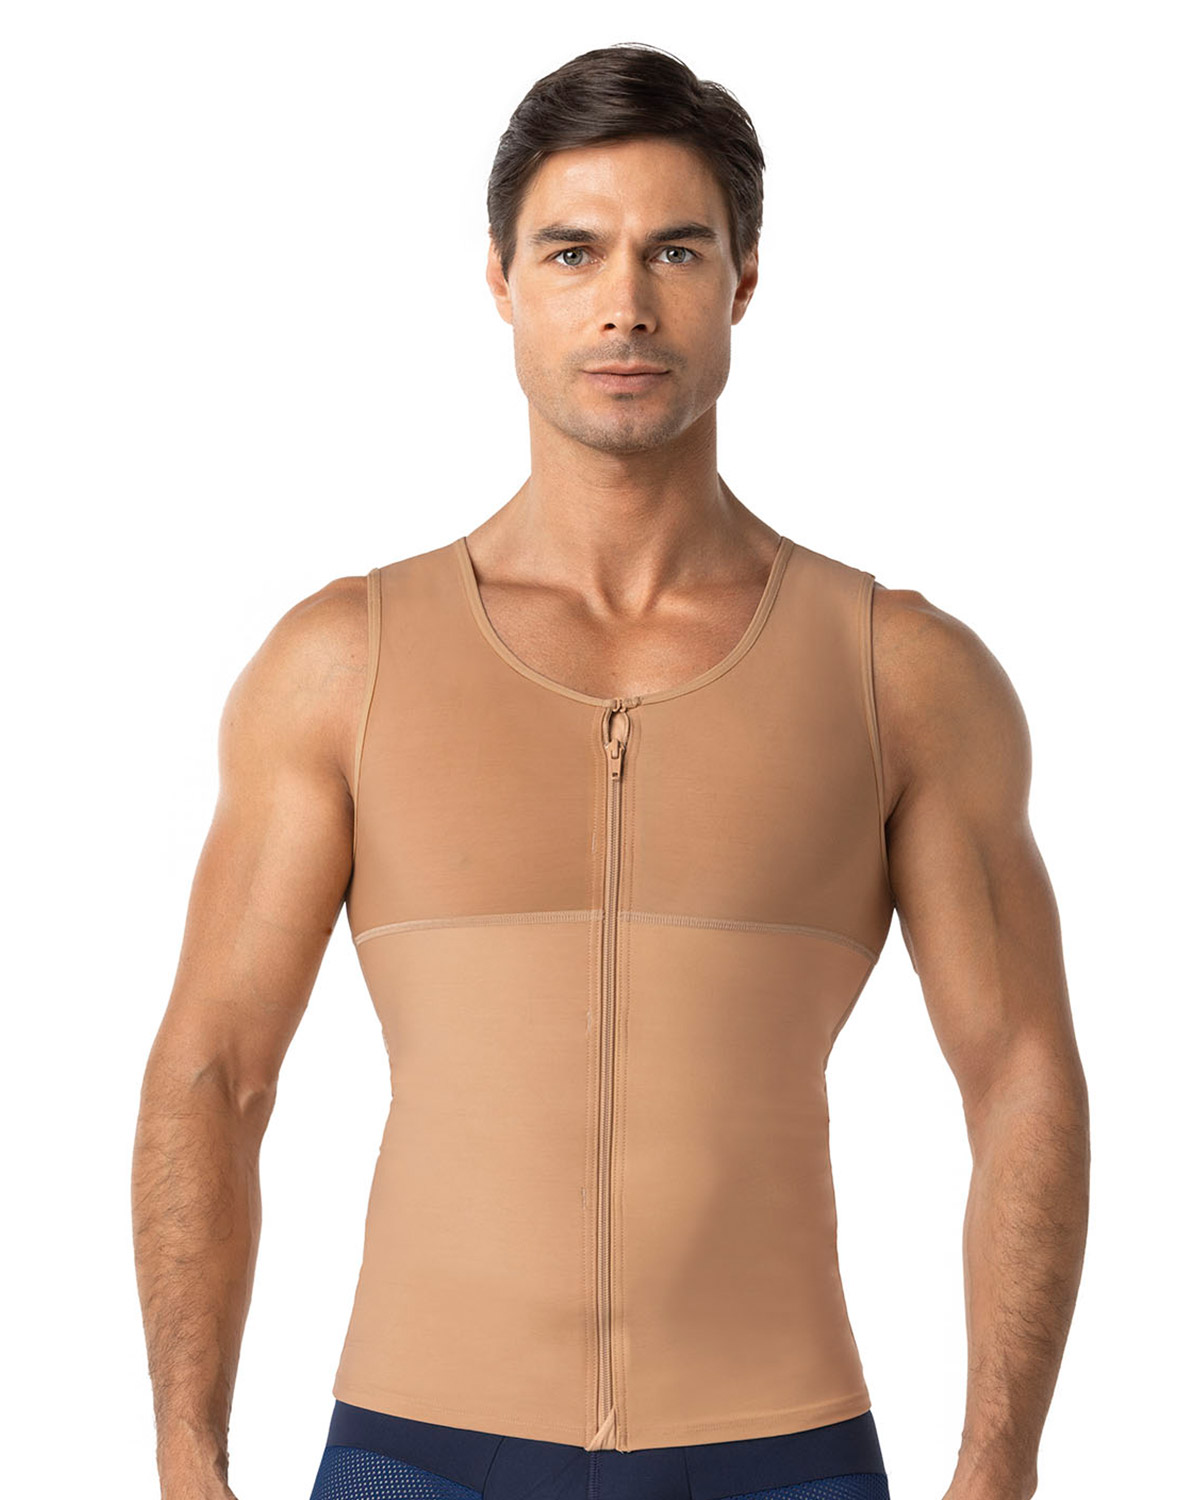 Leonisa Men's Abs Slimming Body Shaper with Back Support ...